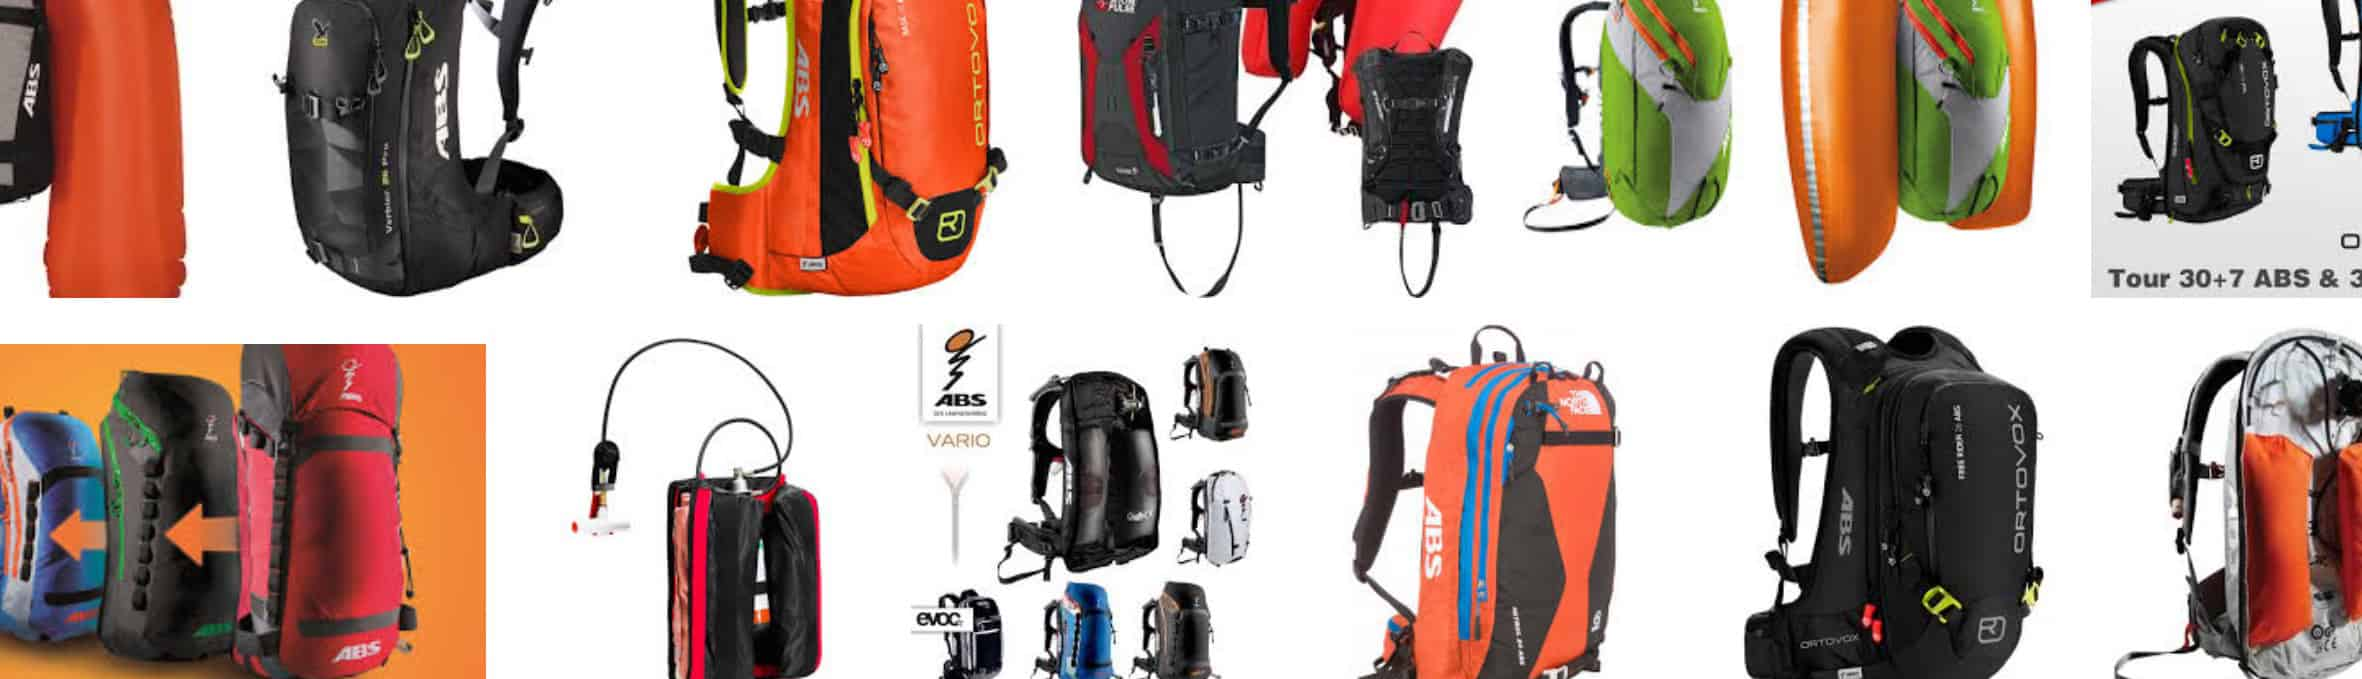 lace up in reasonable price good quality OFF PISTE SKIING - Avalanche ABS bags » Piste To Powder ...